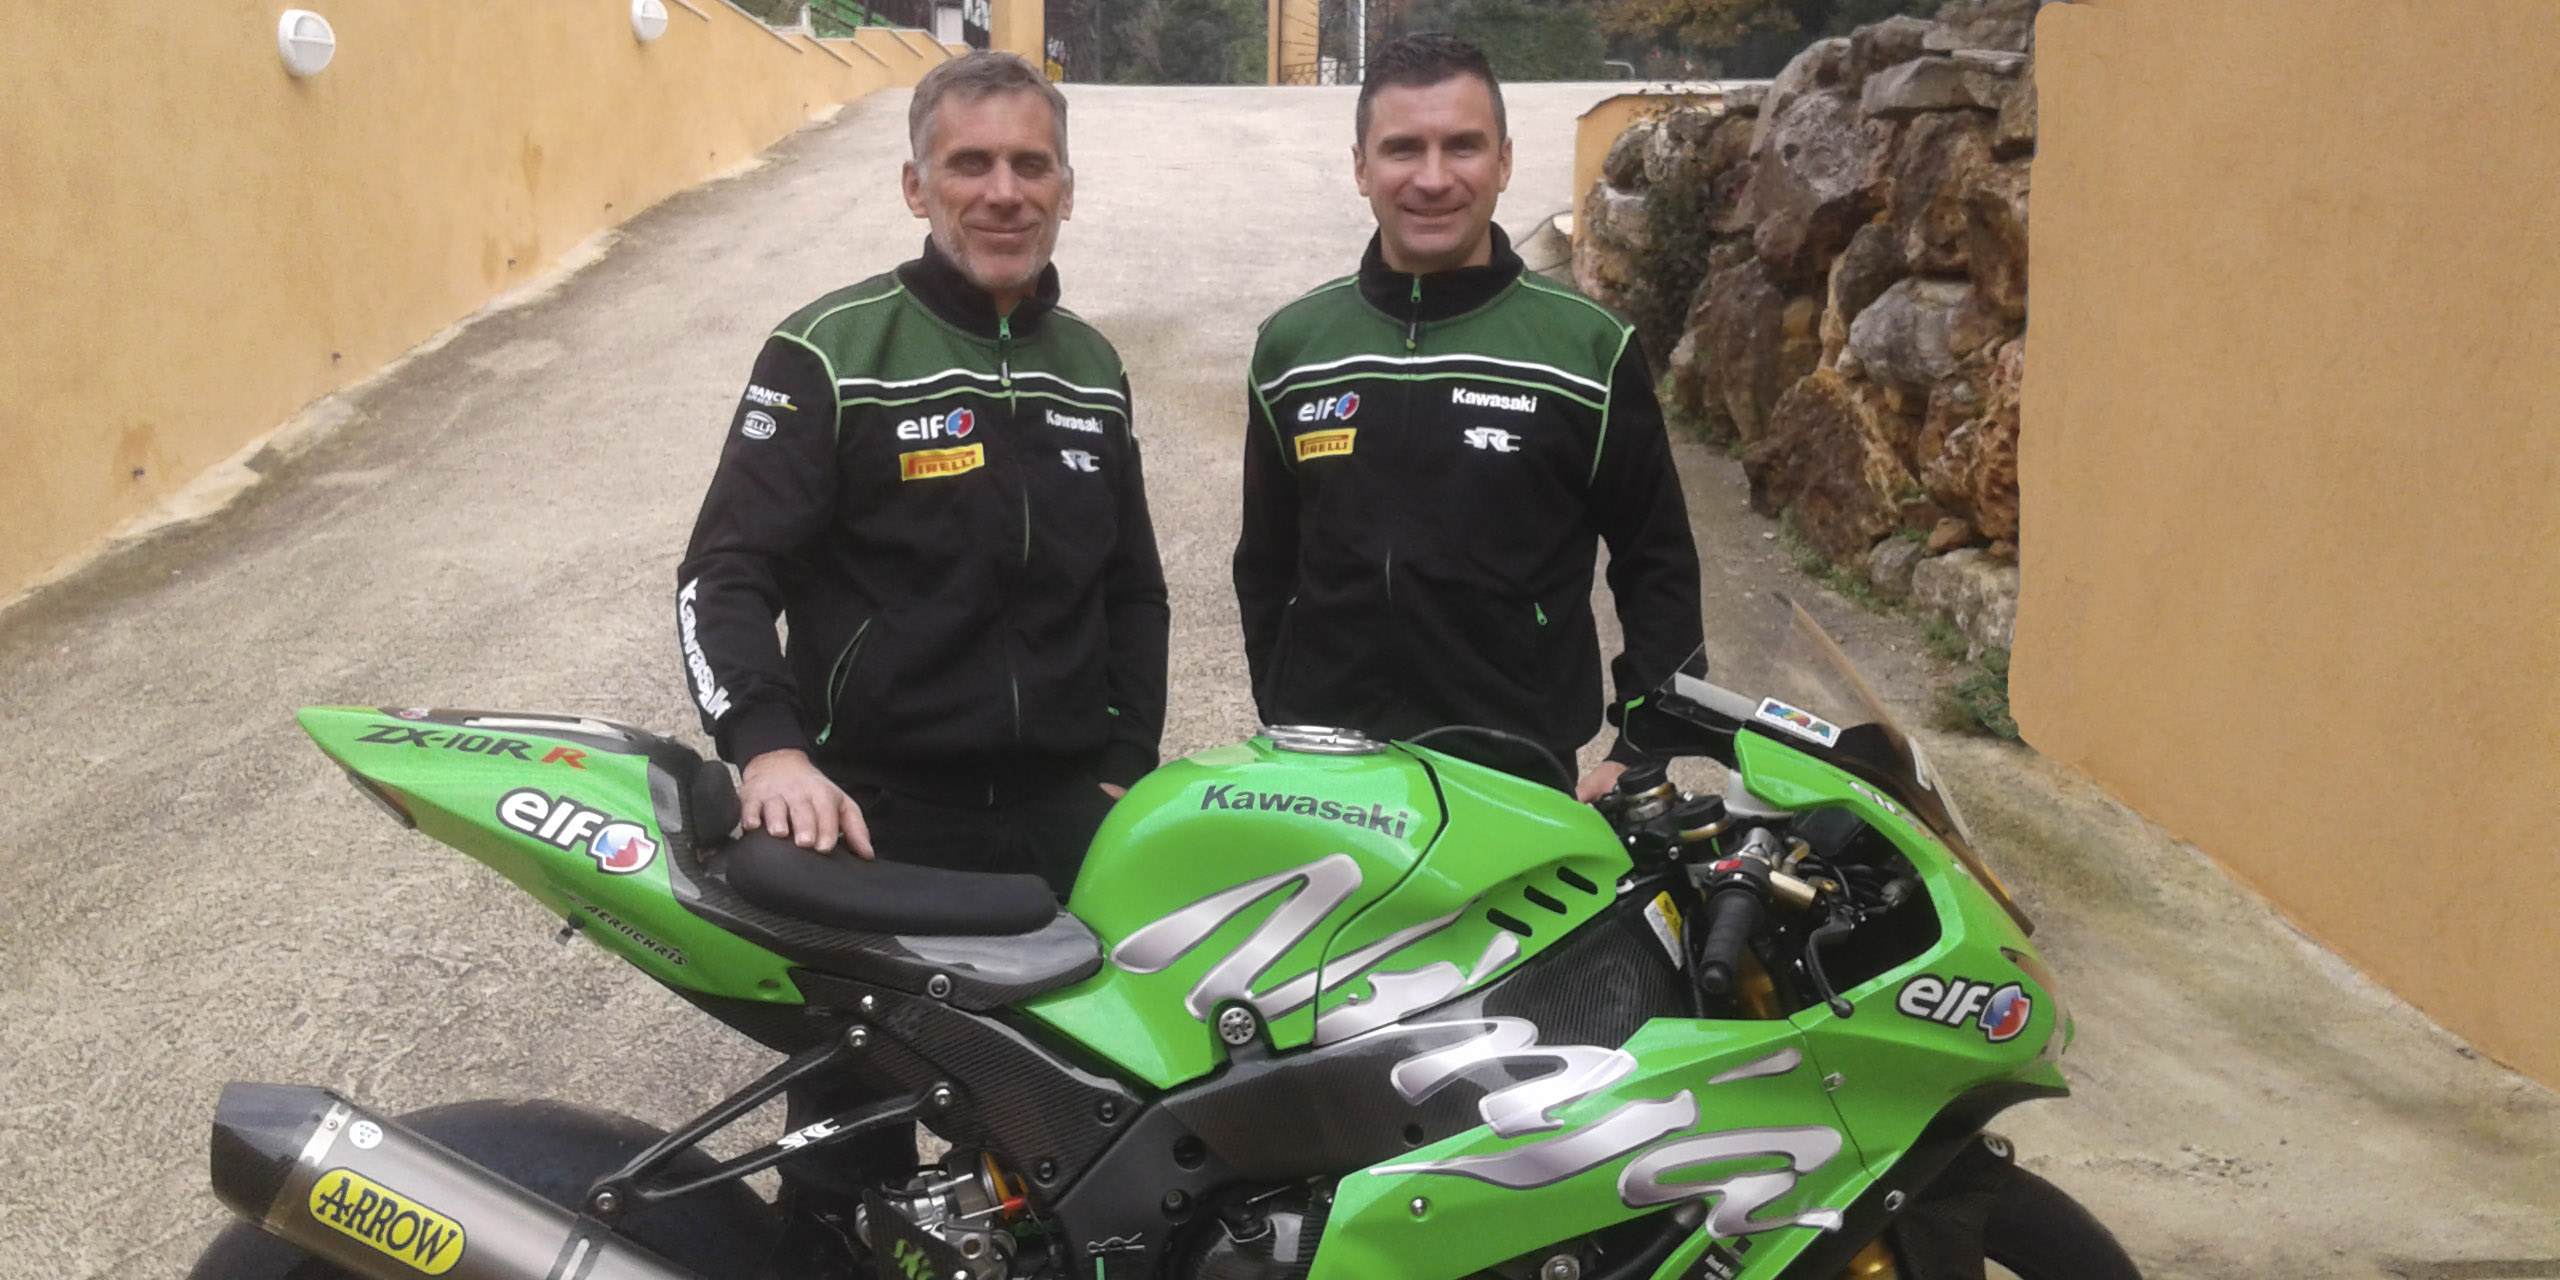 Erwan Nigon joins Team SRC Kawasaki France